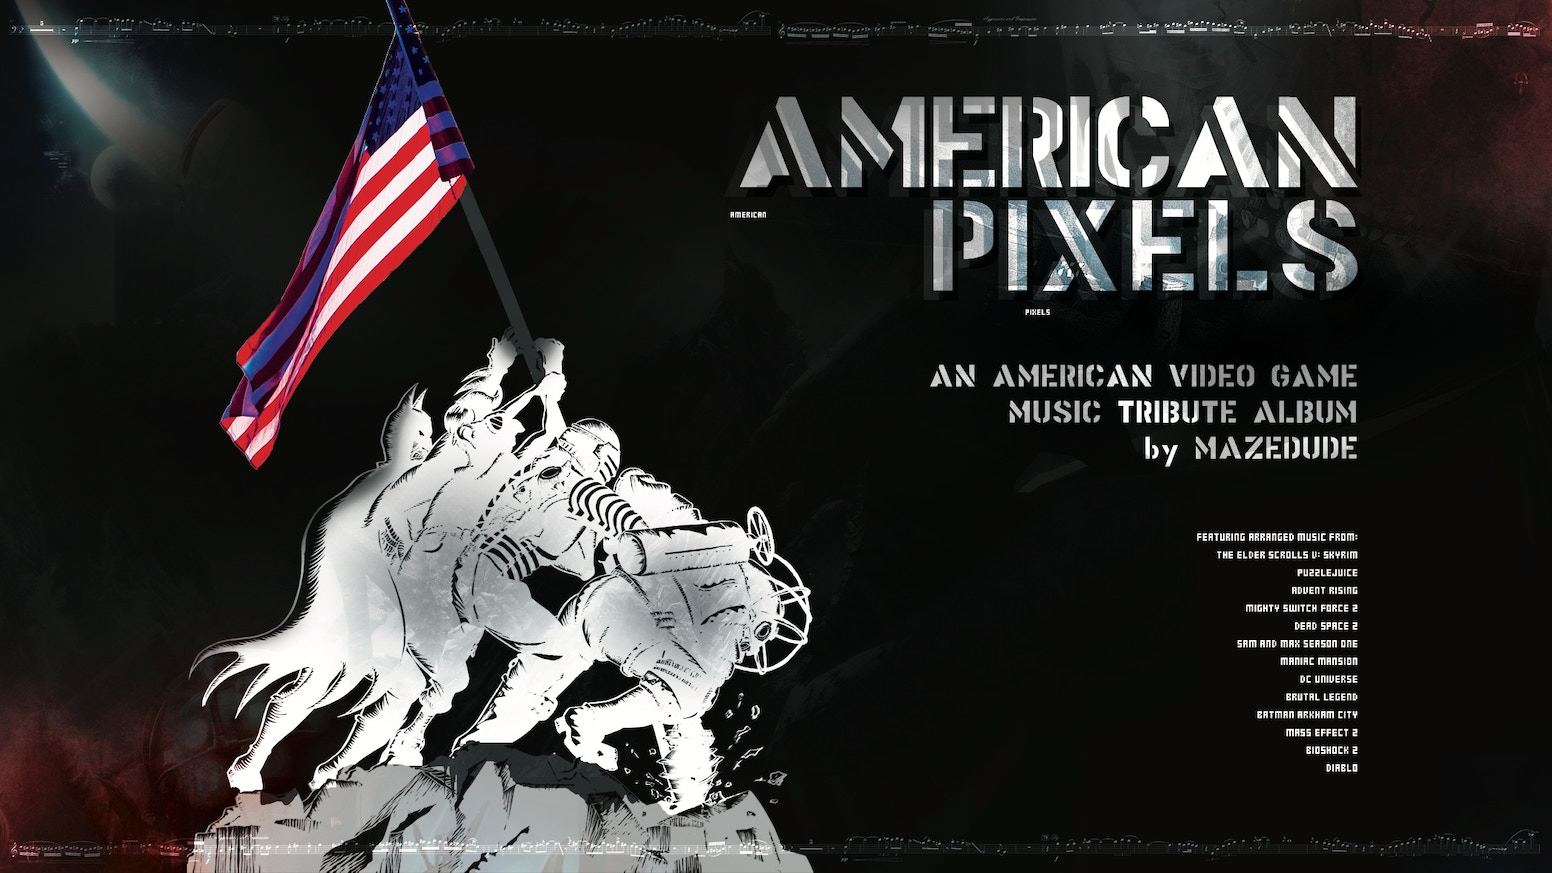 Mazedude presents an arranged album of game music, honoring American composers and featuring several guest performers